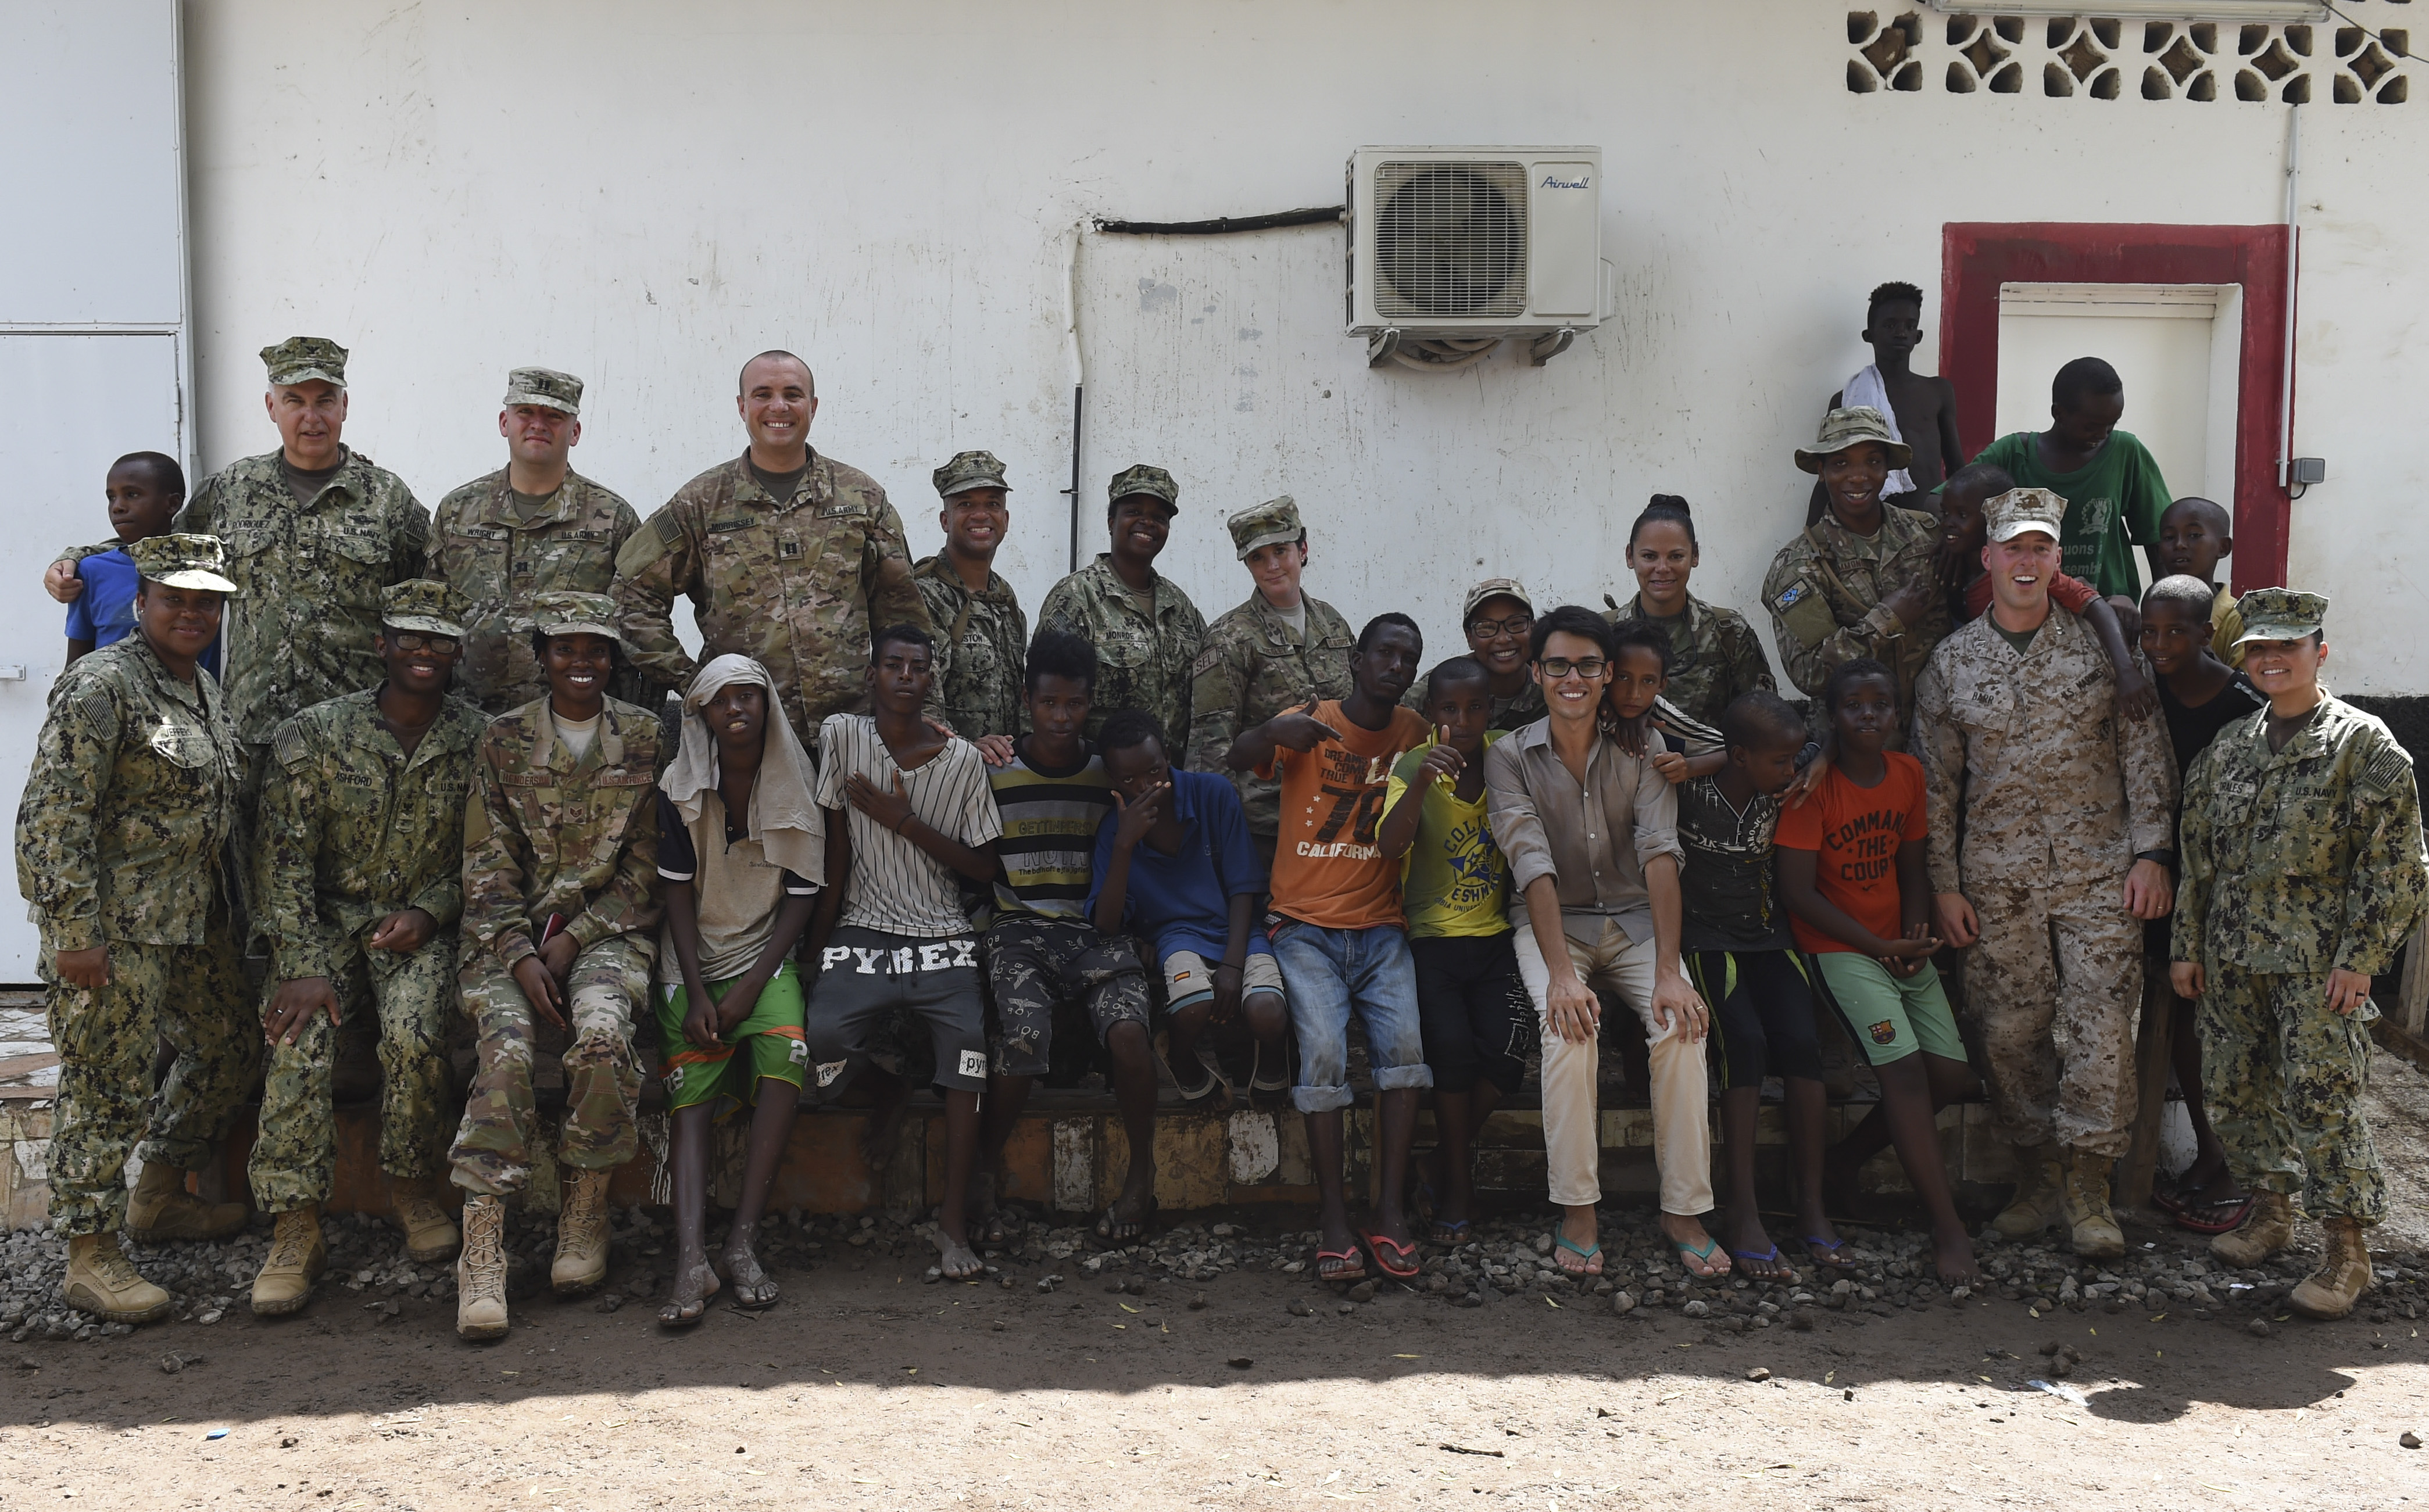 Children from Caritas Djibouti pose for a photo with service members from Camp Lemonnier, in downtown Djibouti, May 16, 2017. U.S. Service members assigned to the Combined joint Task Force - Horn of Africa, periodically visit with the mission to donate food items, toys, clothing and supplies. (U.S. Air Force photo by Eboni Prince)